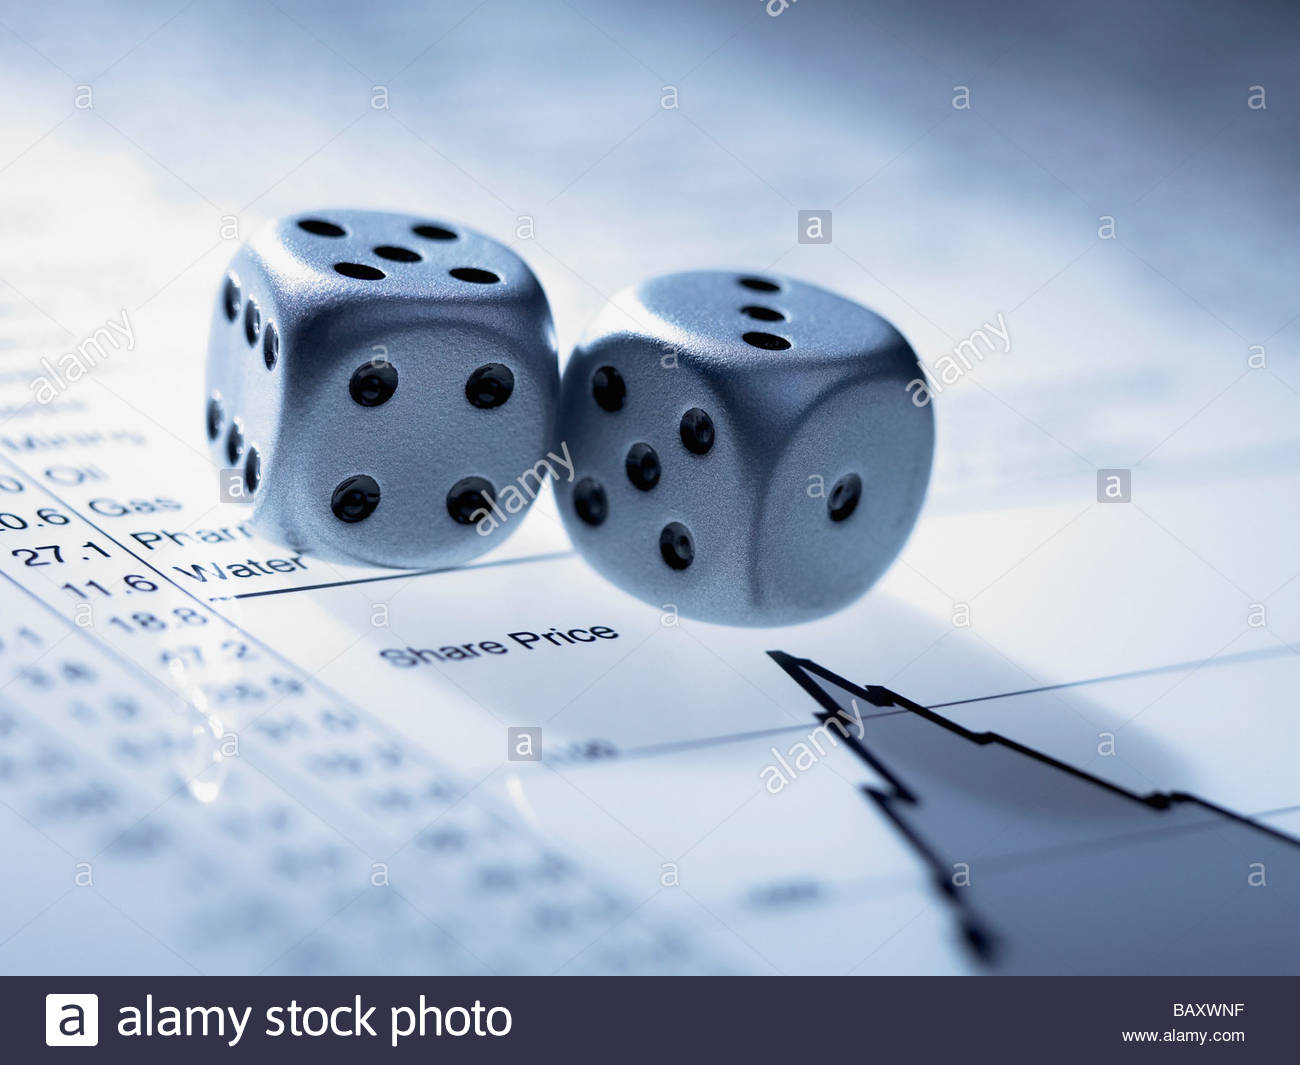 Silver dice on list of share prices - Stock Image